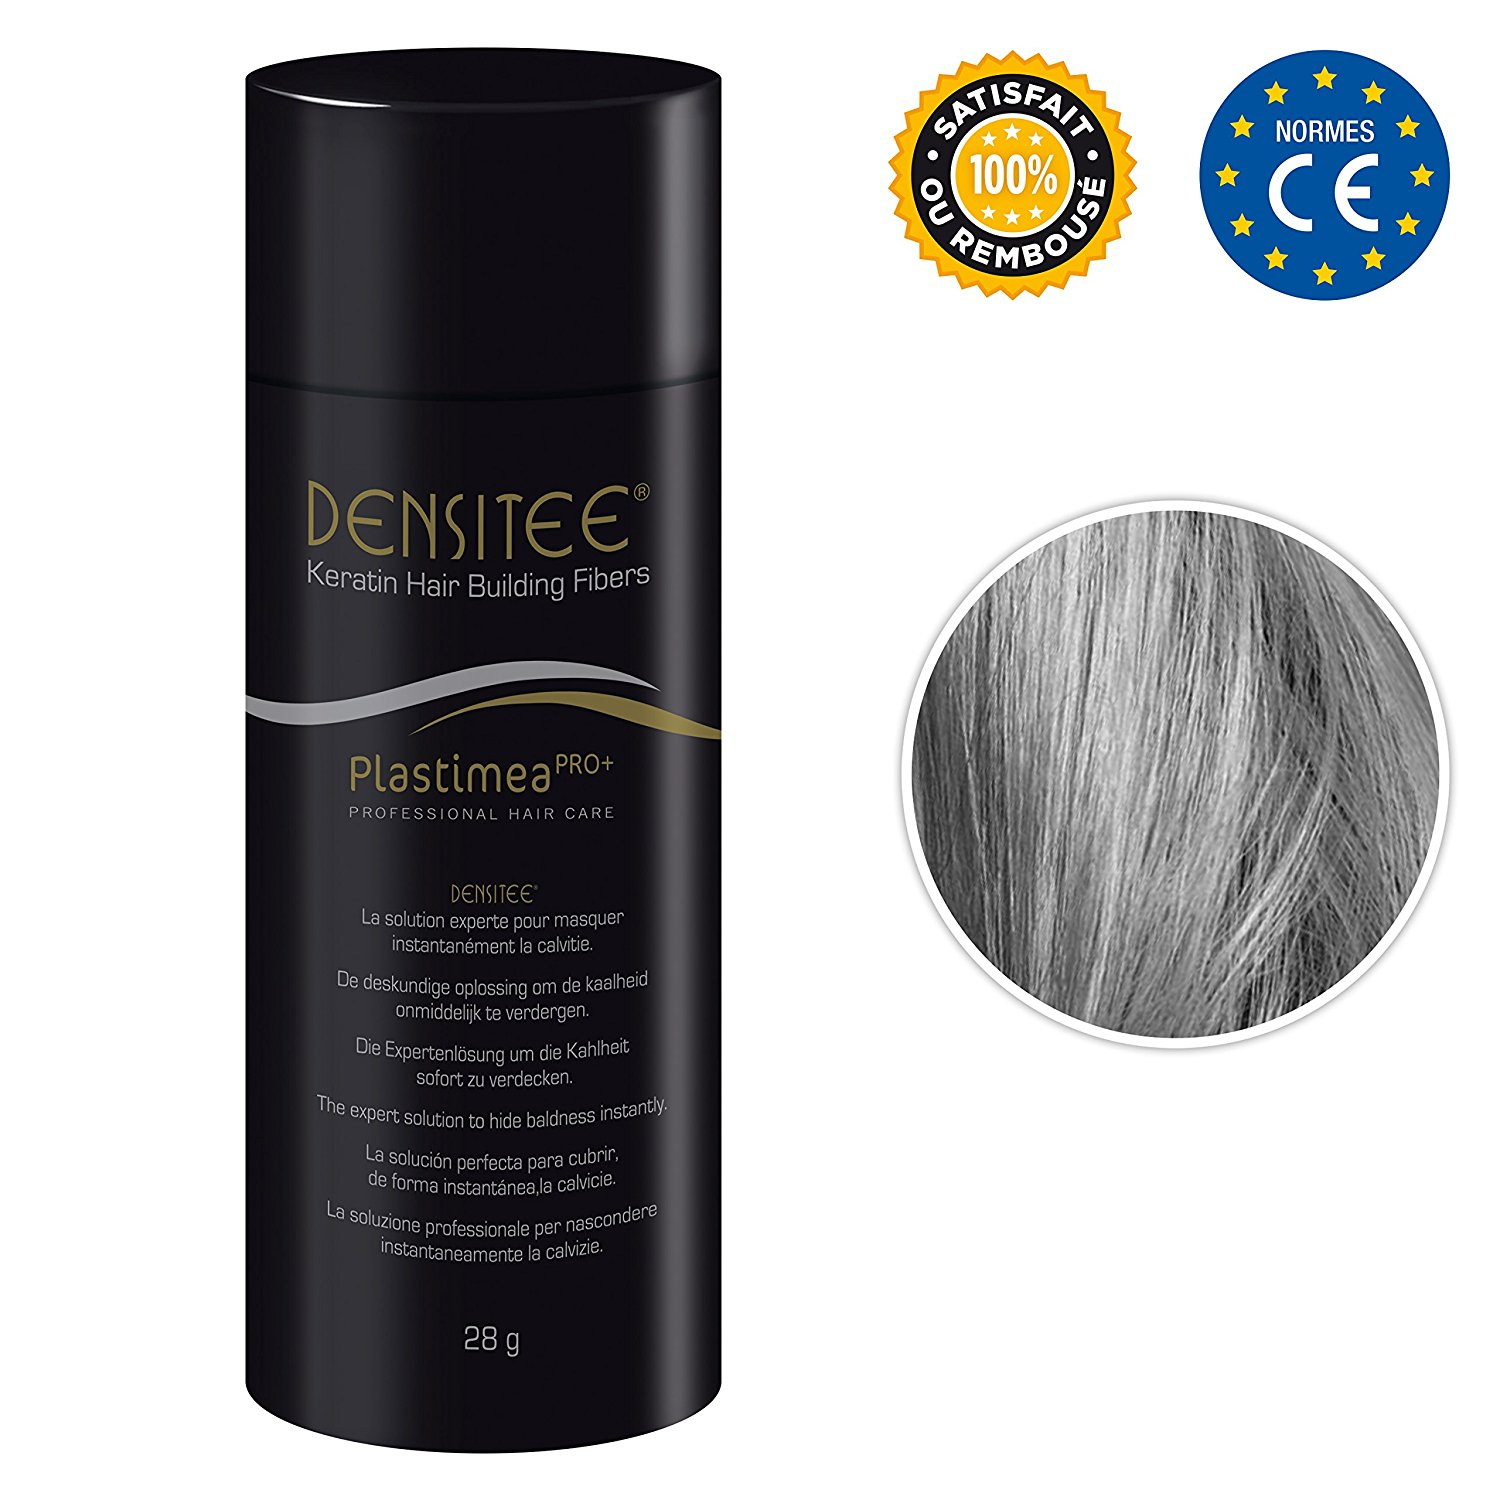 !!! SPECIAL OFFER !!! DENSITEE Hair Loss Solution – 28g Hair Building Keratine Fibers – For MEN and WOMEN - Grey